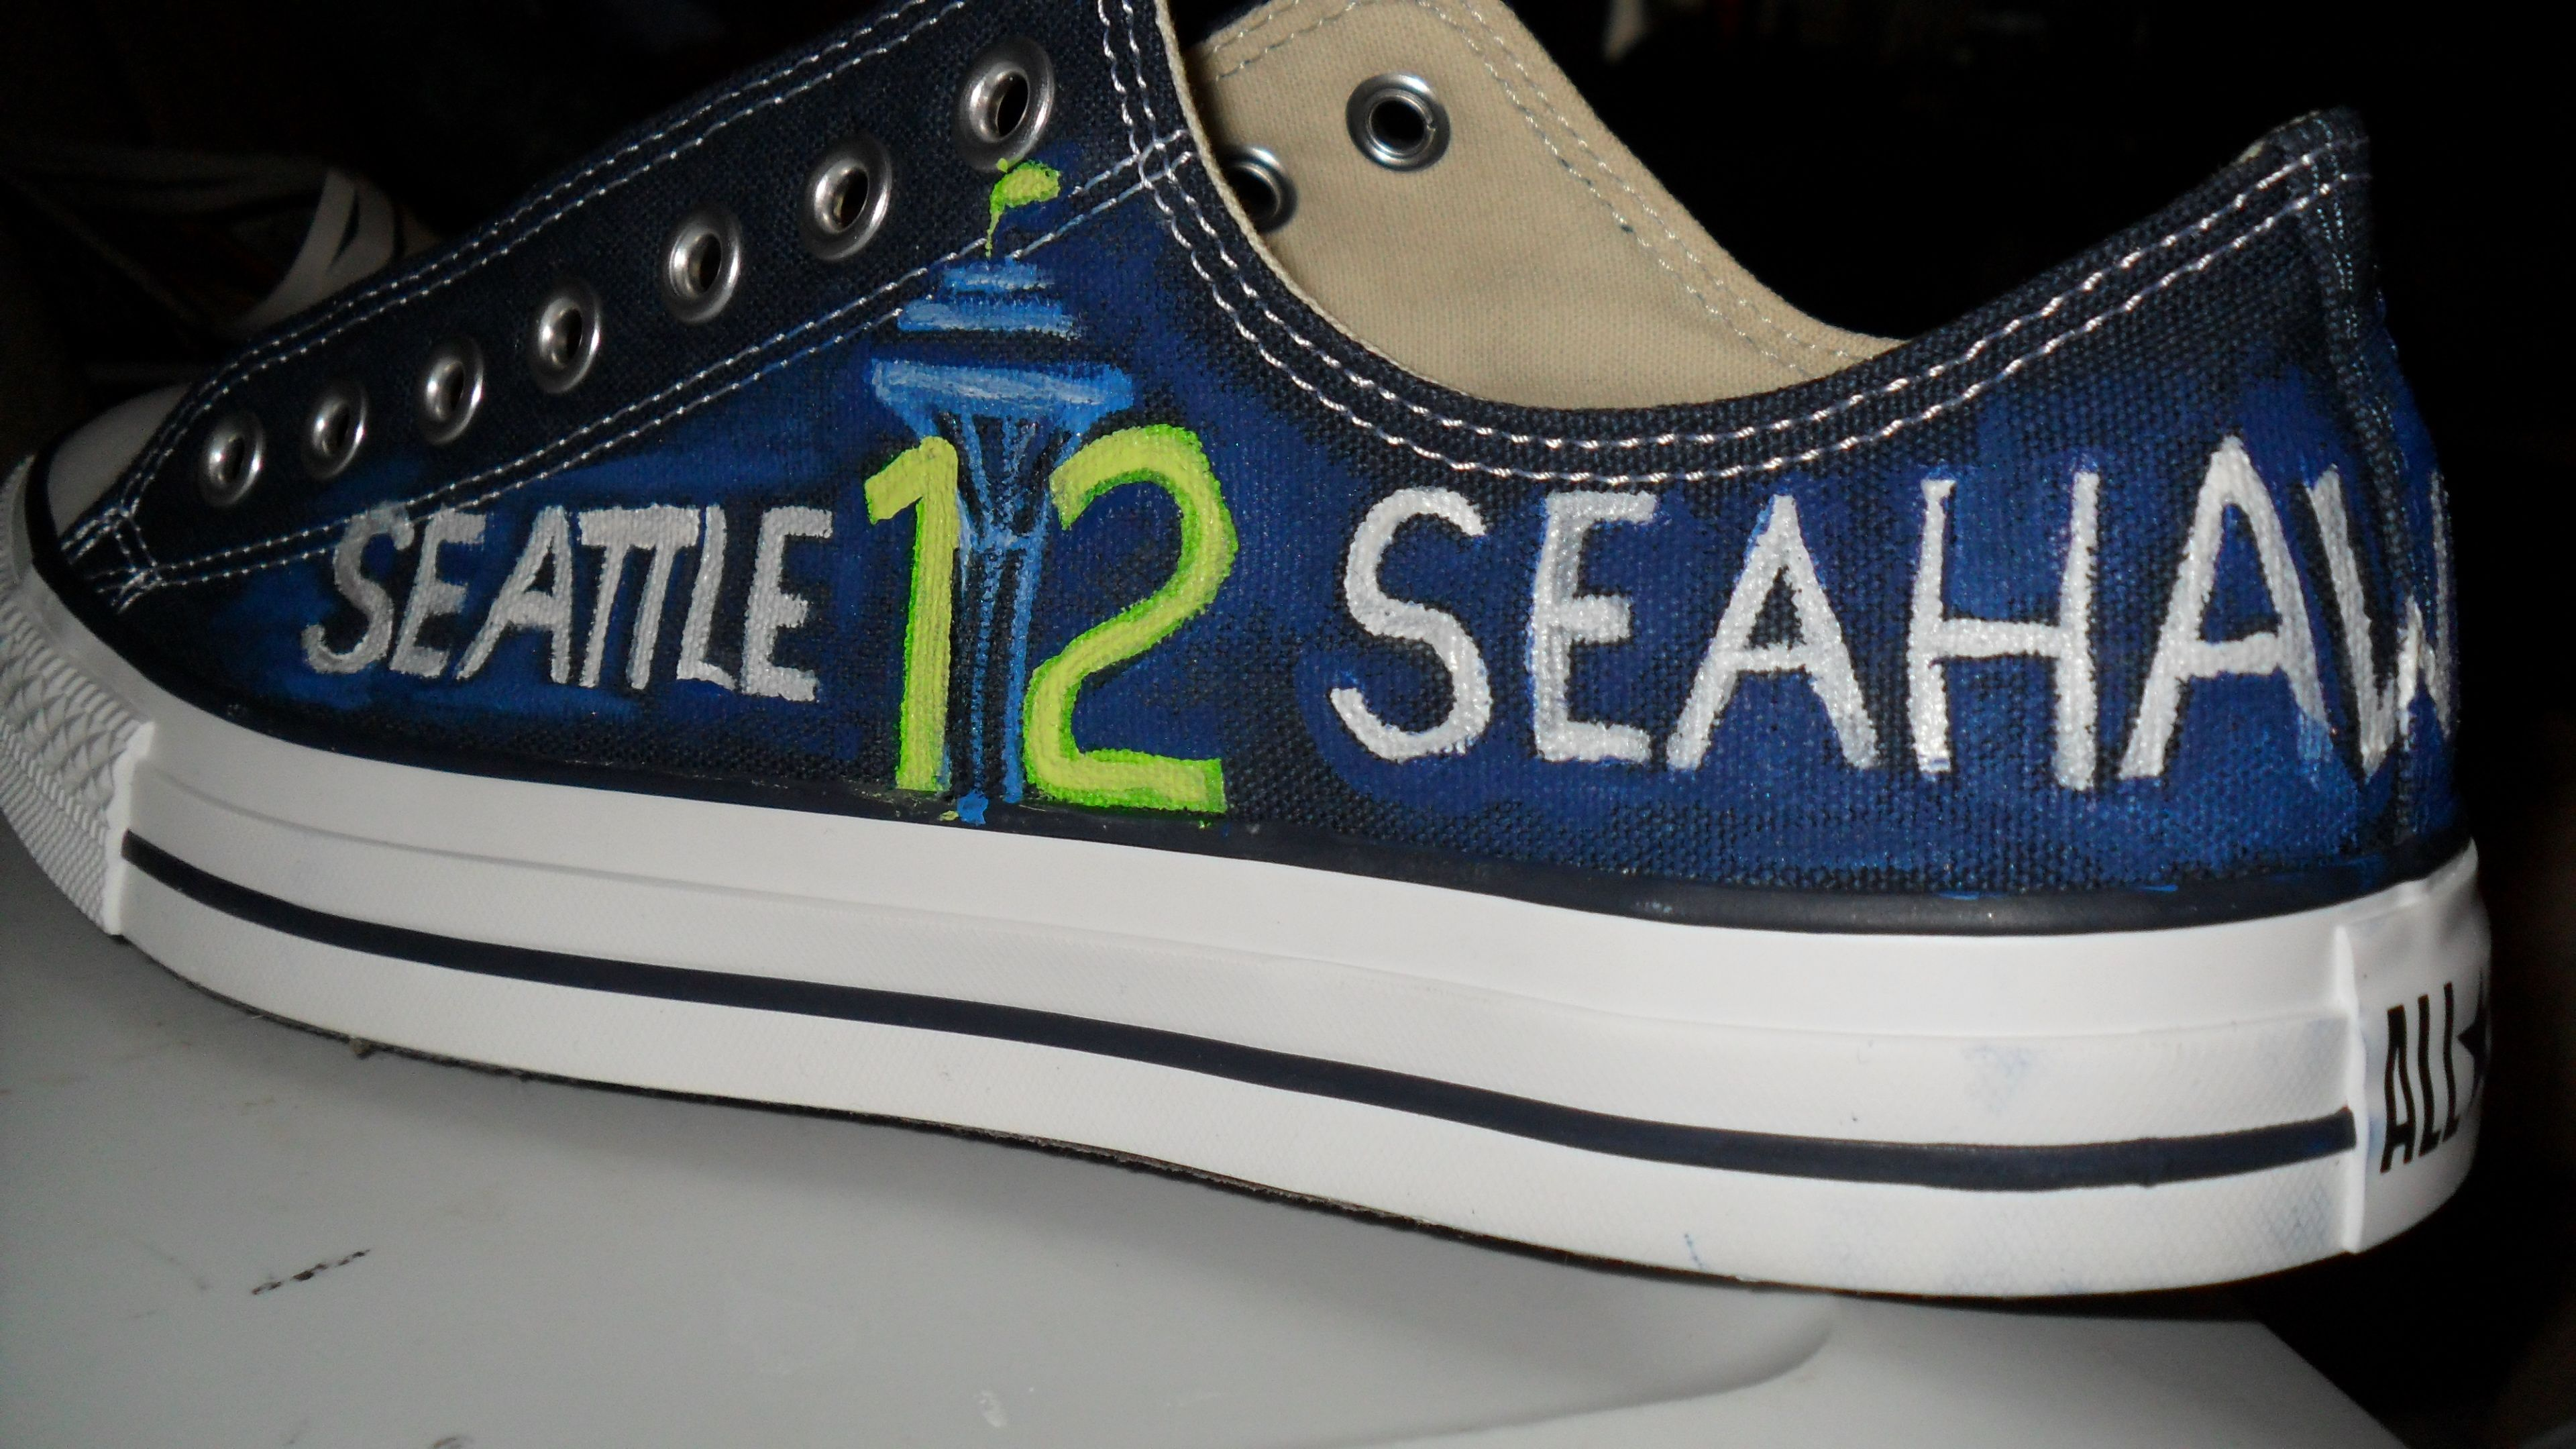 ee0959f9110ee7 Seattle Seahawks hand painted shoes